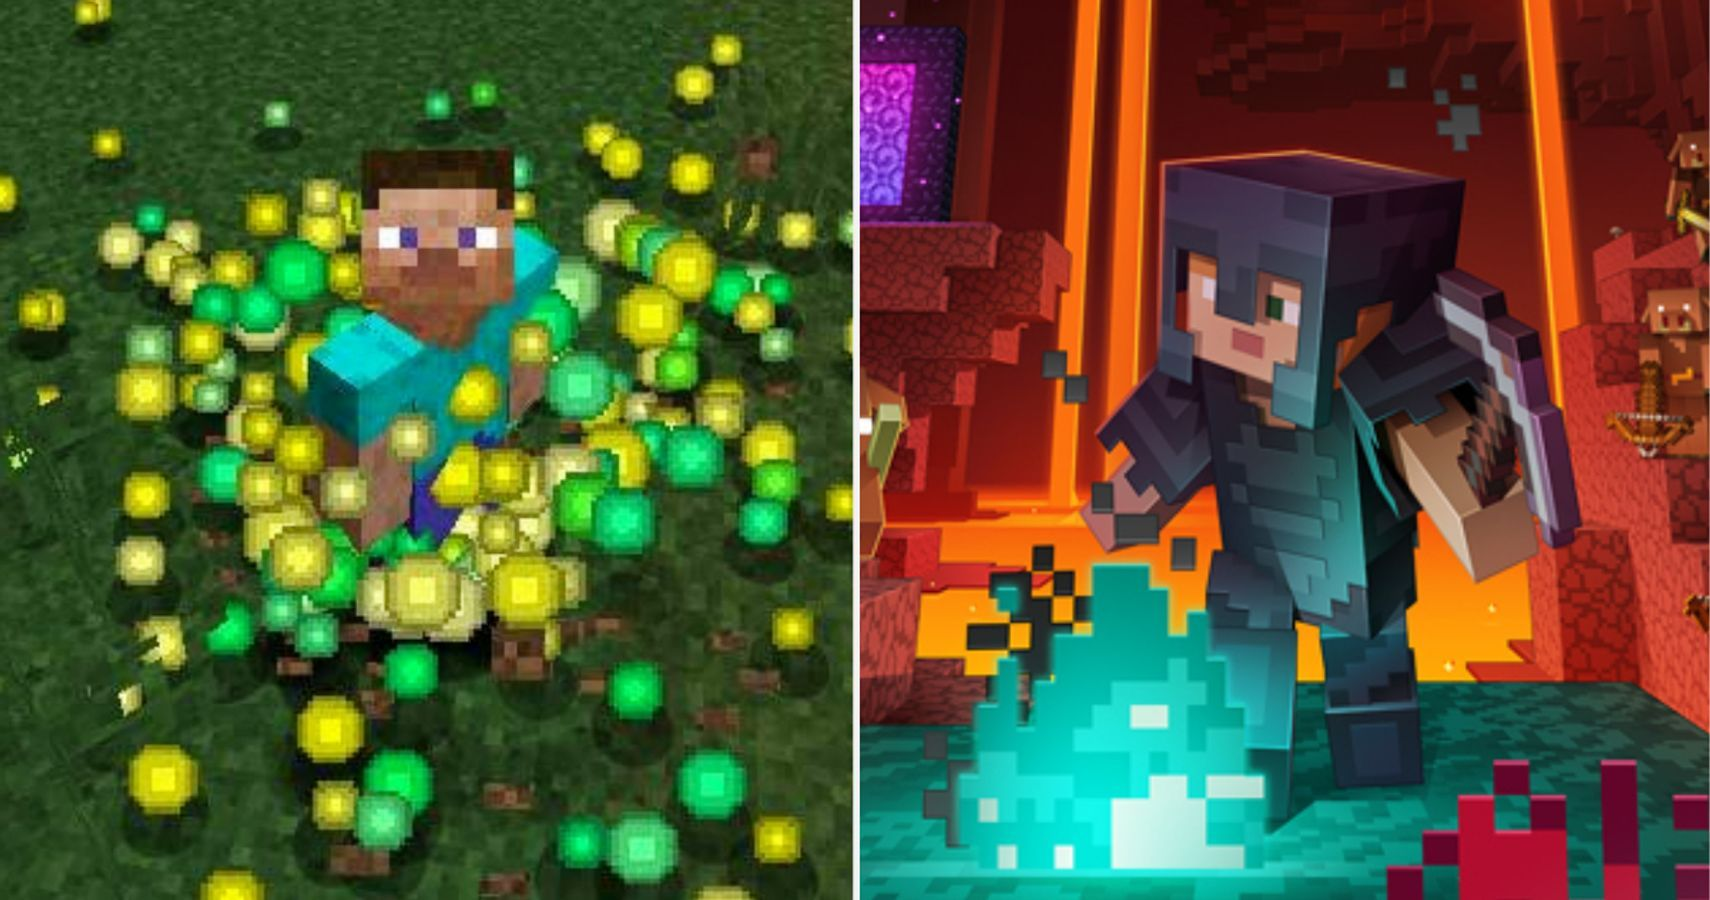 Minecraft: Fastest Way To Level Up (& 12 Other Easy Ways)